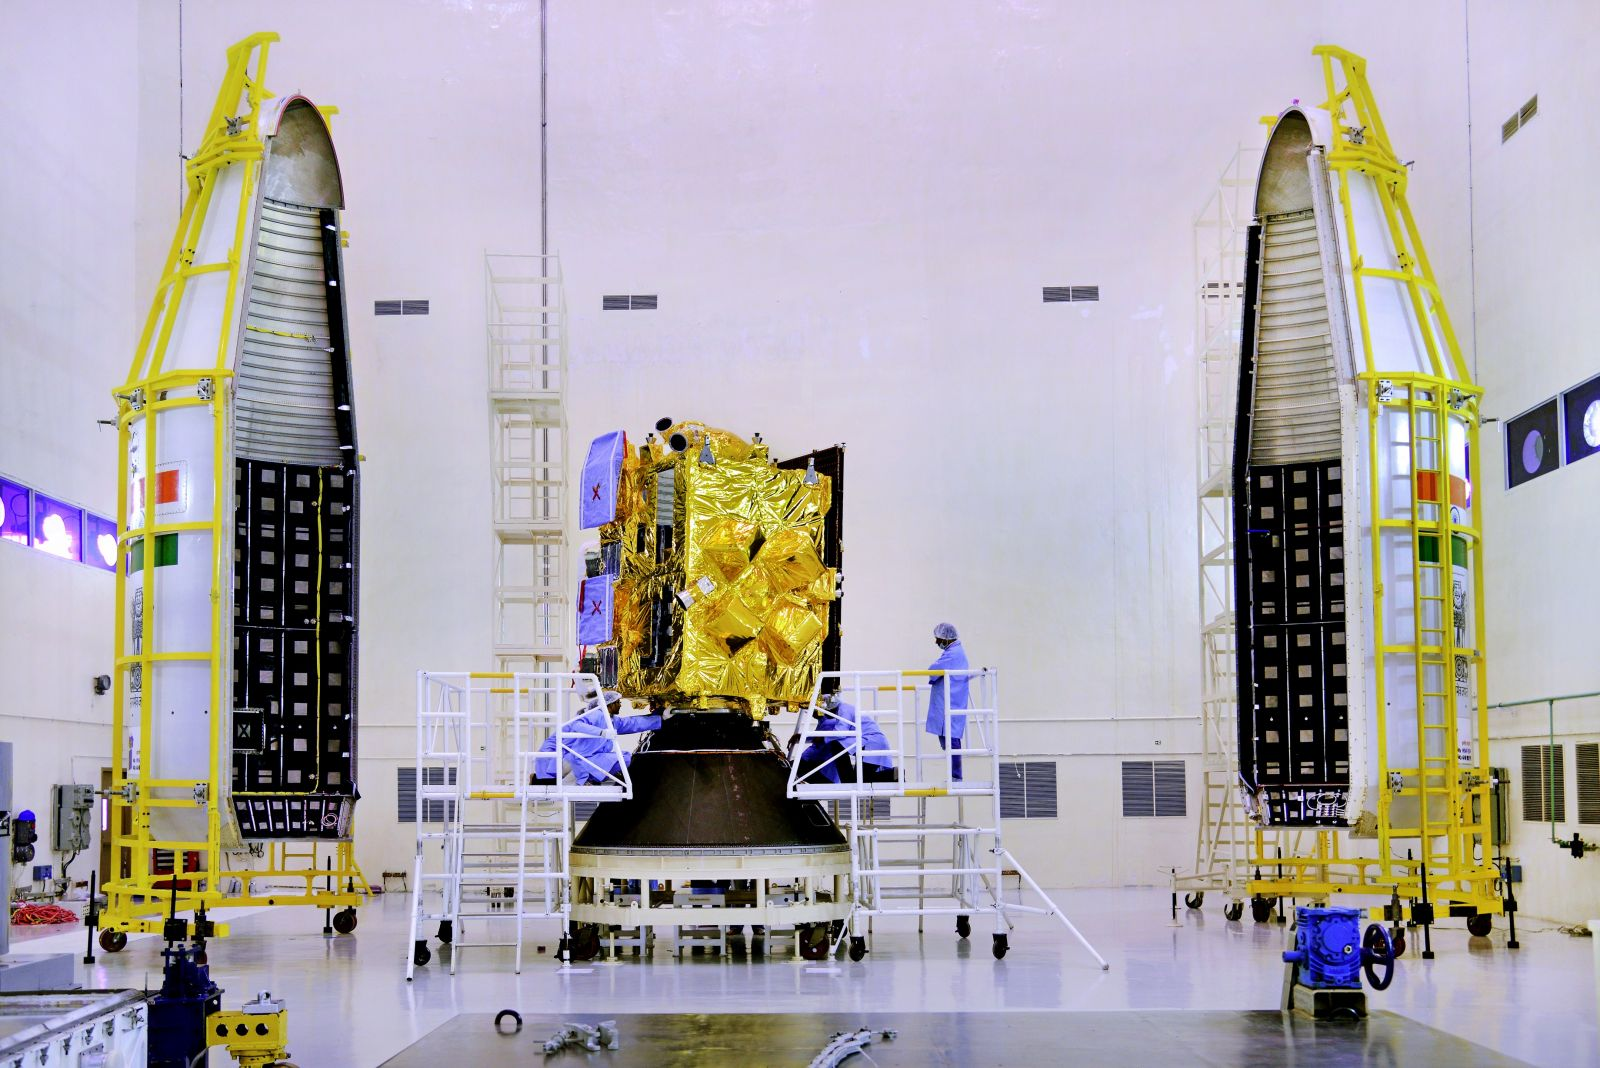 INSAT-3DR seen with two halves of payload faring of GSLV-F05.